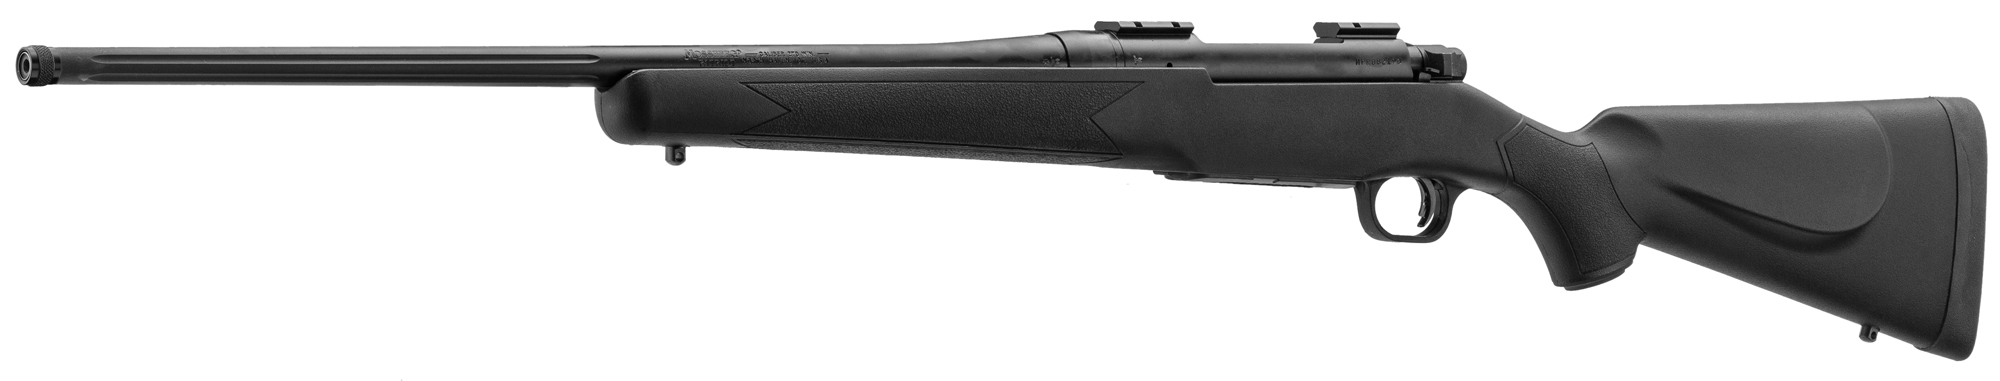 MO2430F-8-Carabines Mossberg Patriot à canon fileté - crosse Synthétique - MO2430F